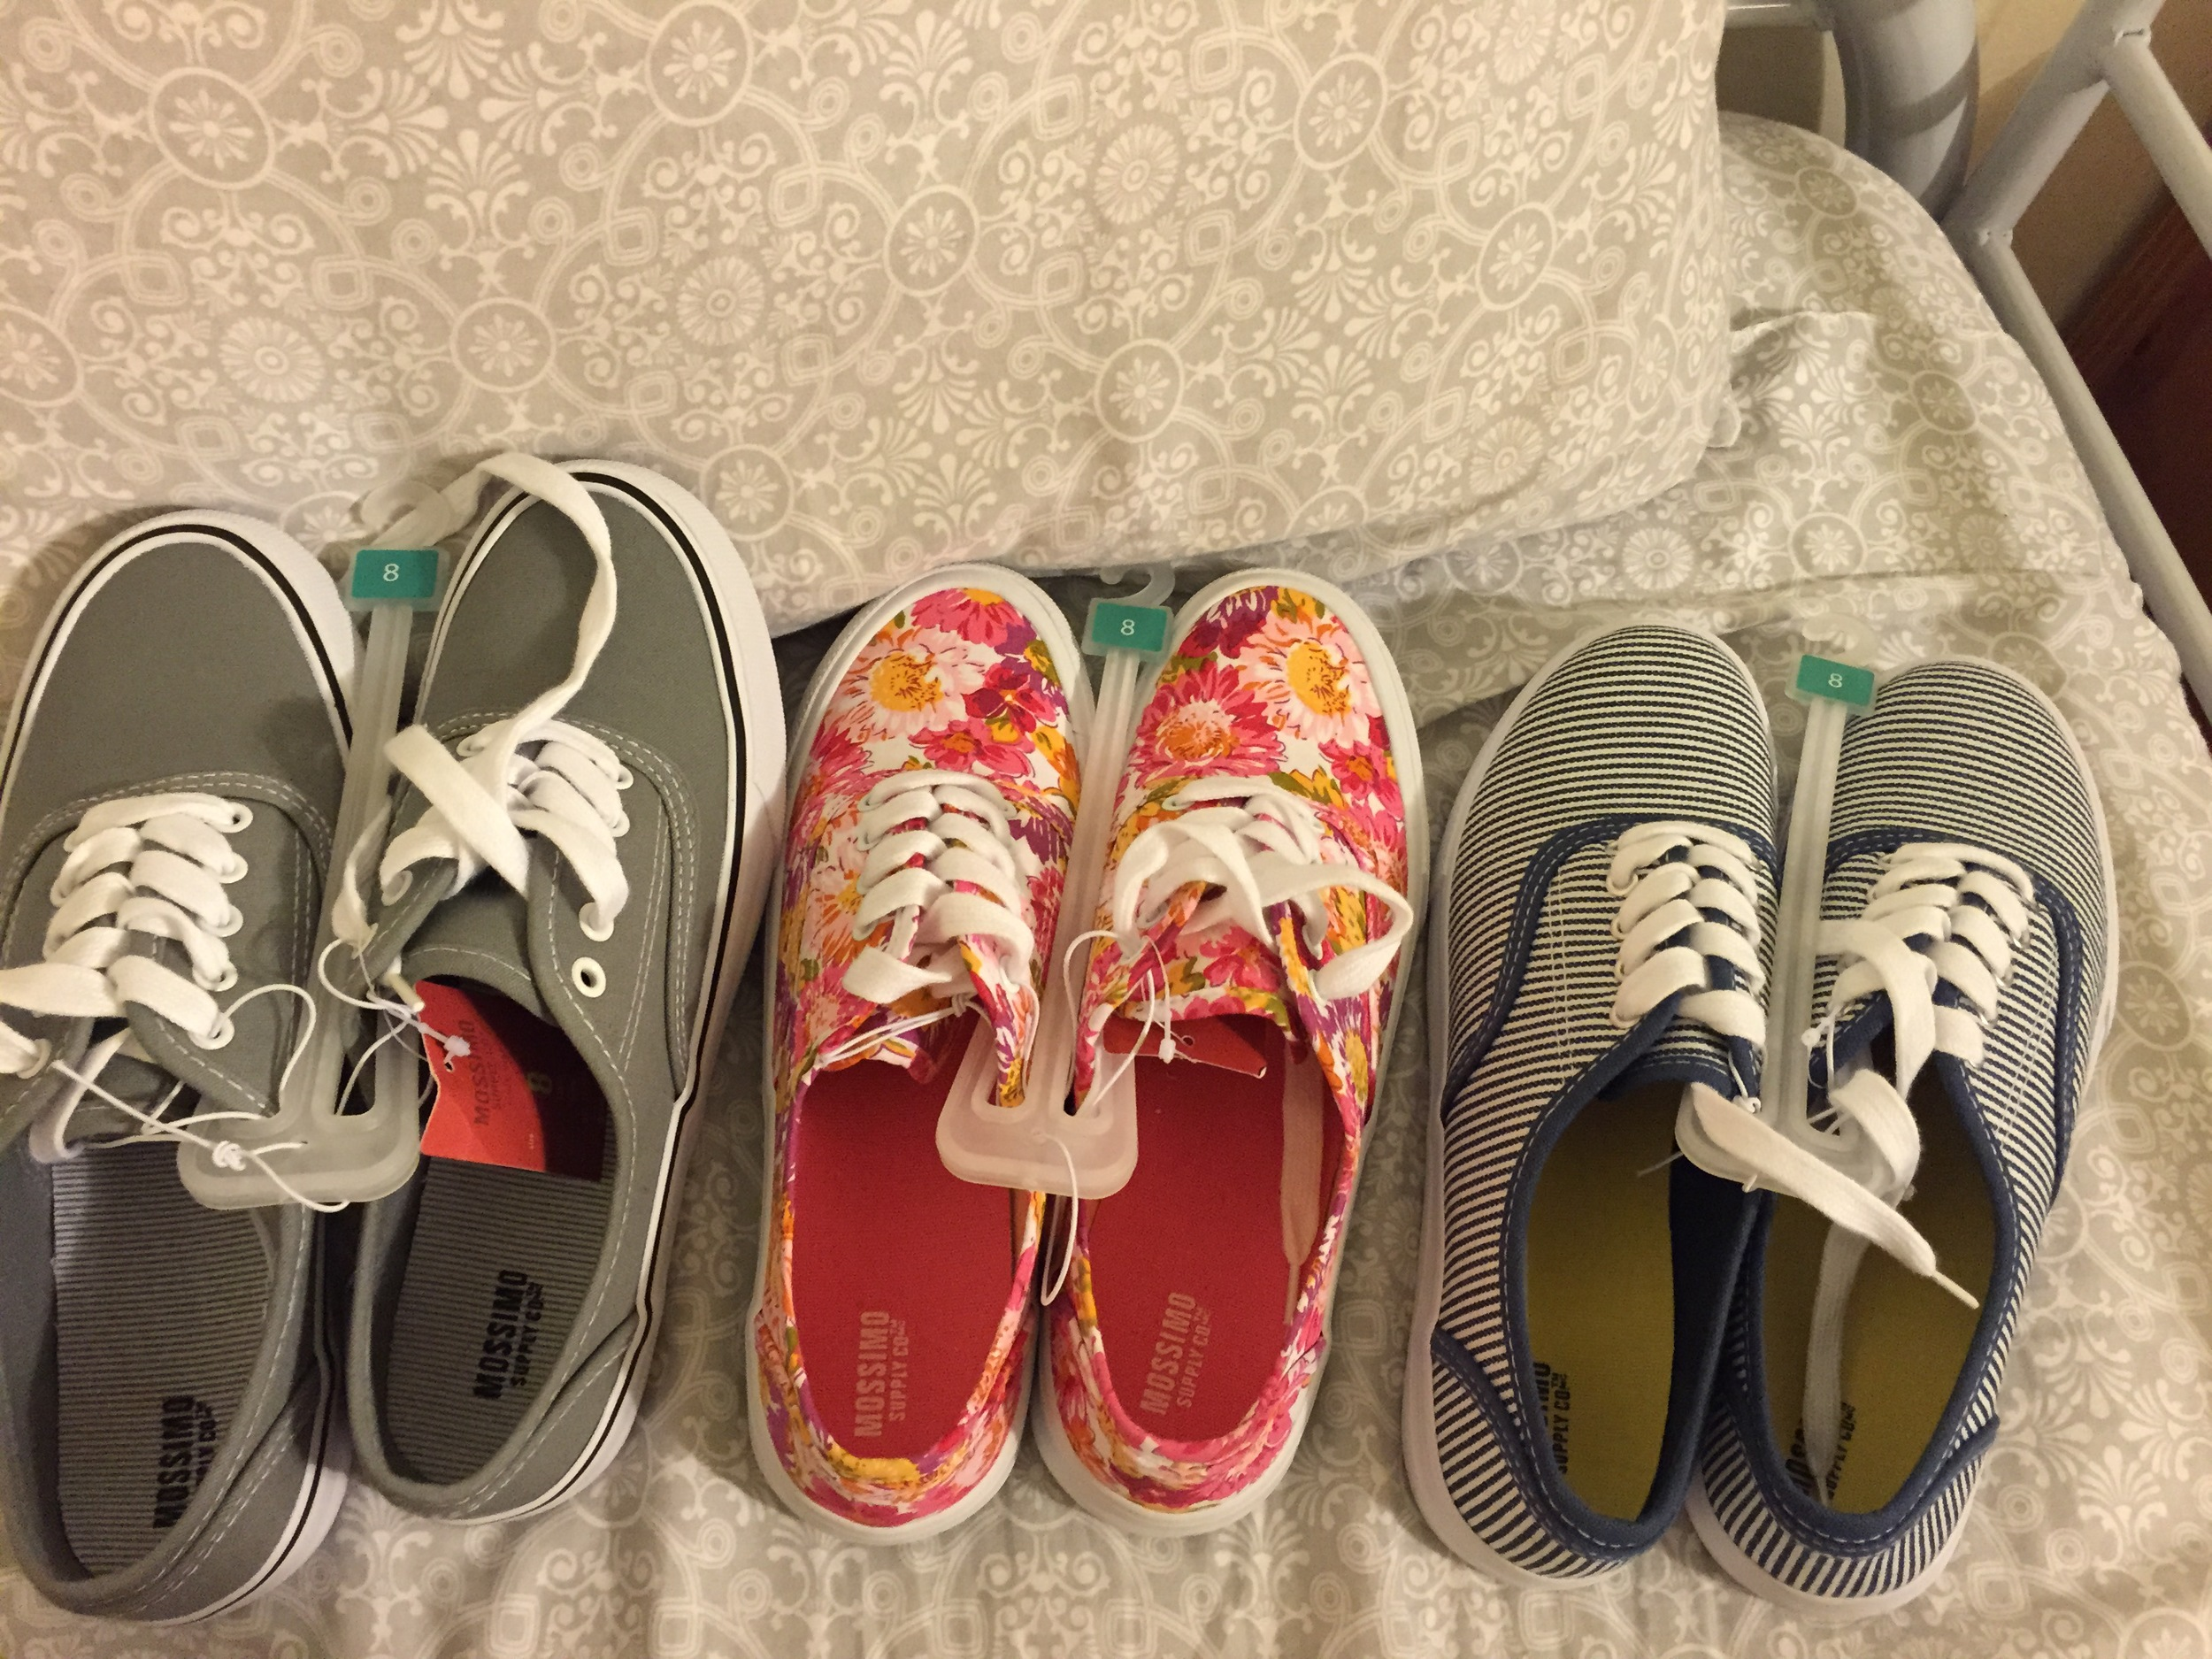 Shoes, ready to be packed